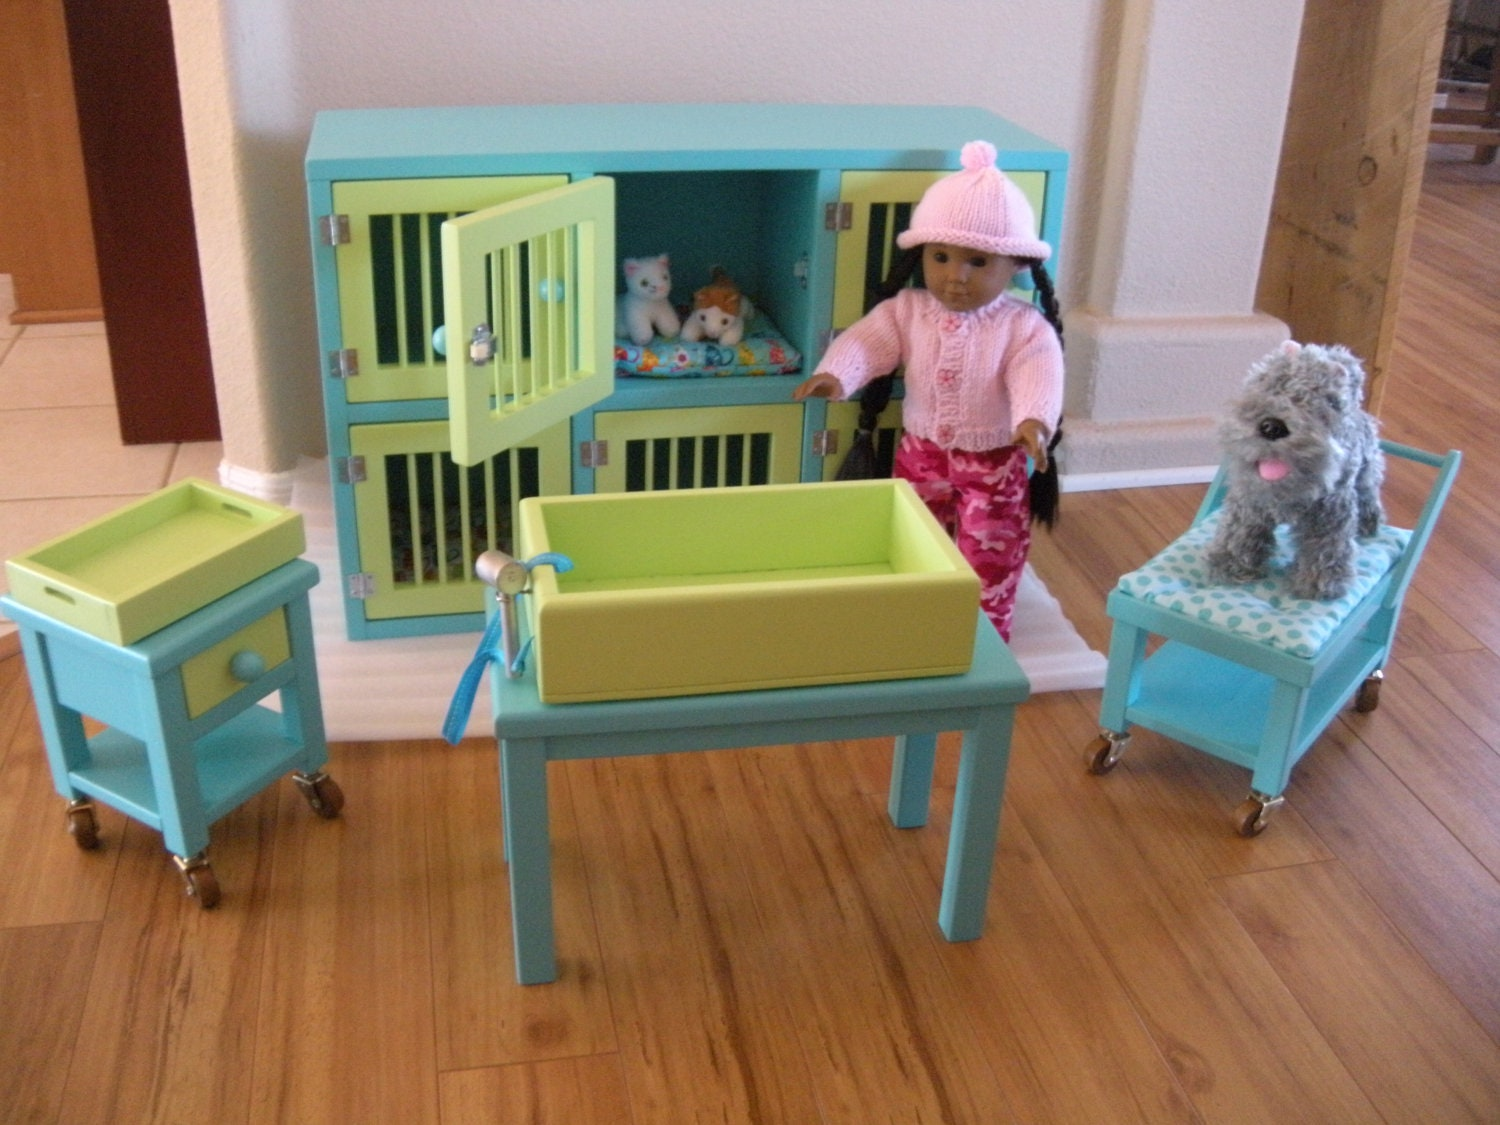 Cats On An American Girl Doll Bed